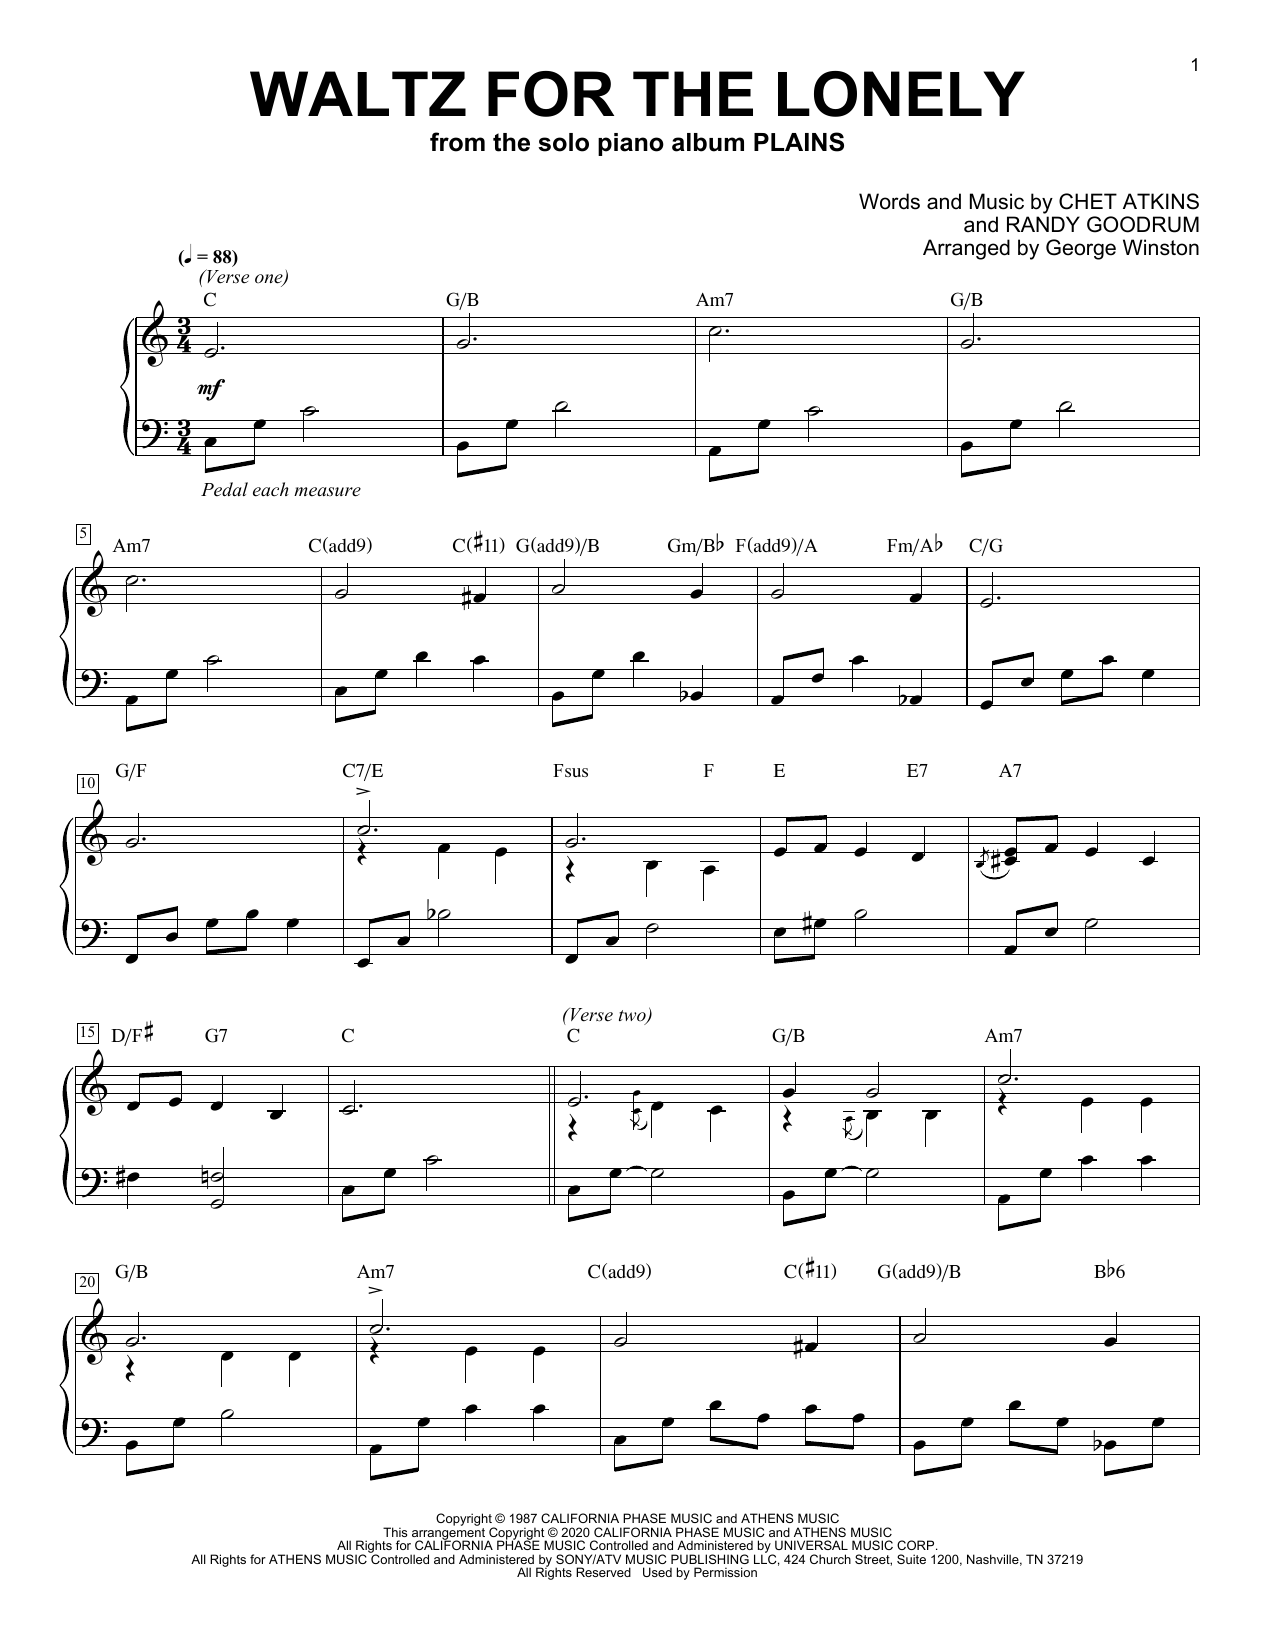 George Winston Waltz For The Lonely sheet music notes printable PDF score